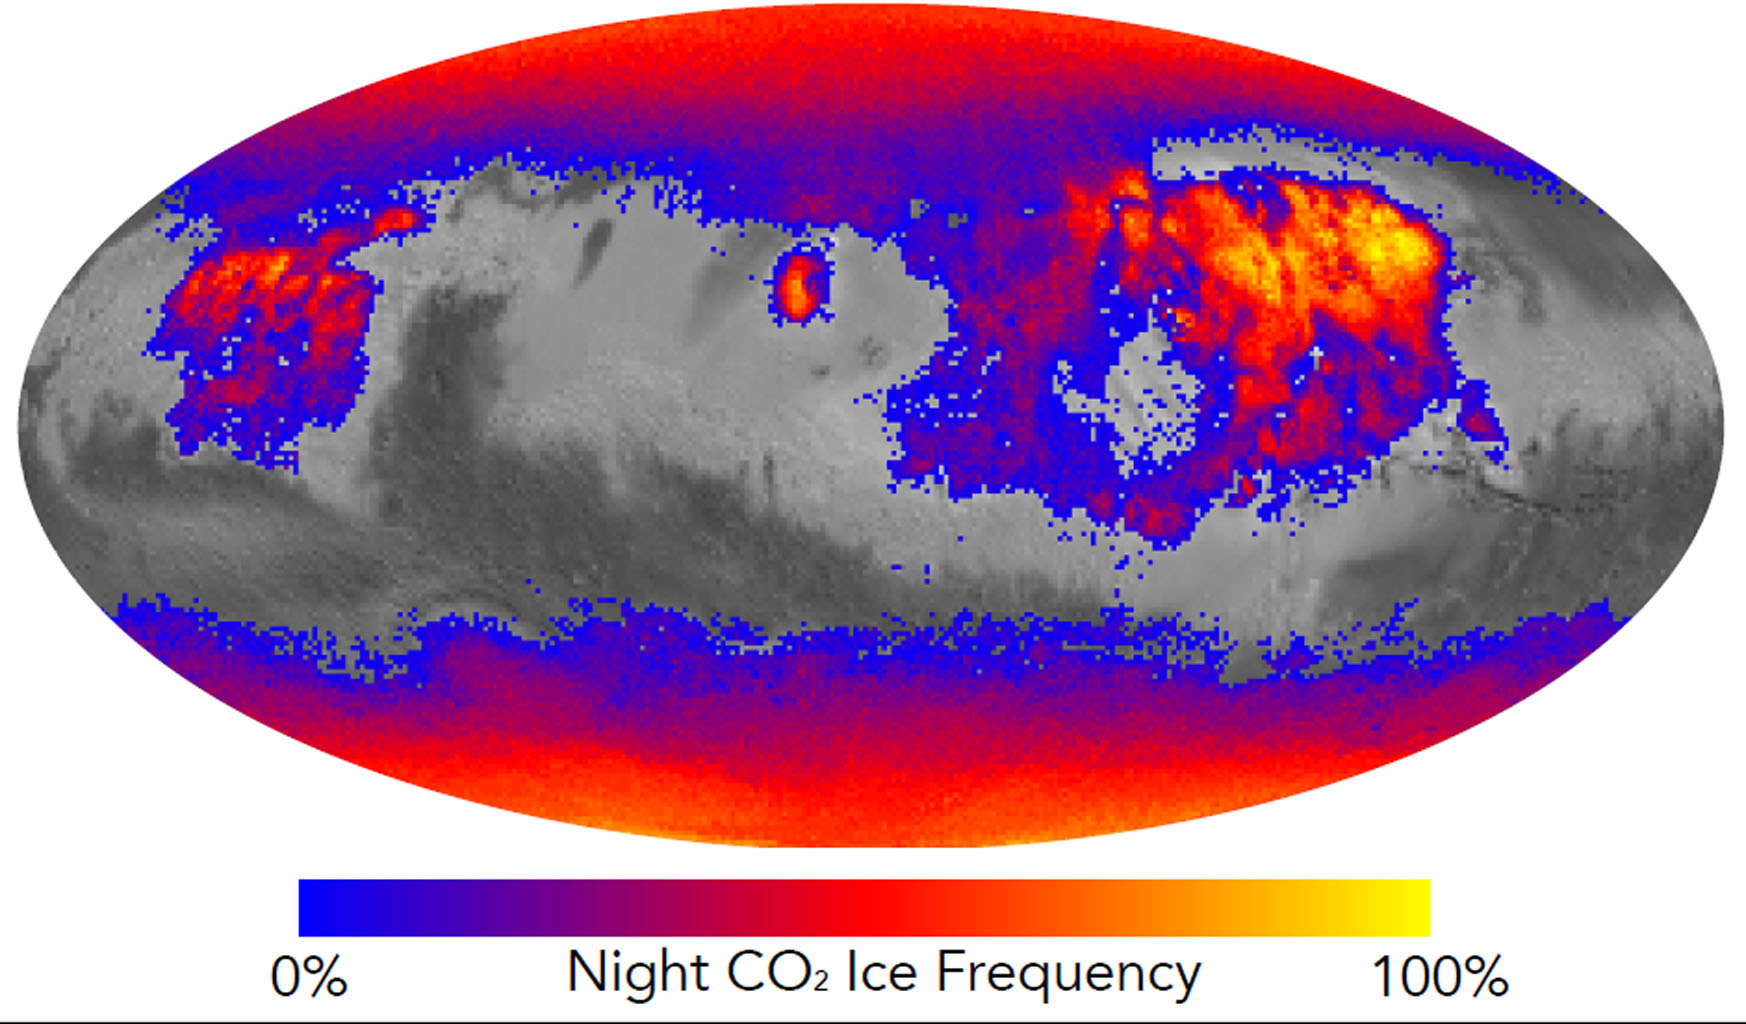 This map shows the frequency of carbon dioxide frost's presence at sunrise on Mars, as a percentage of days year-round, based on data from NASA's Mars Reconnaissance Orbiter.